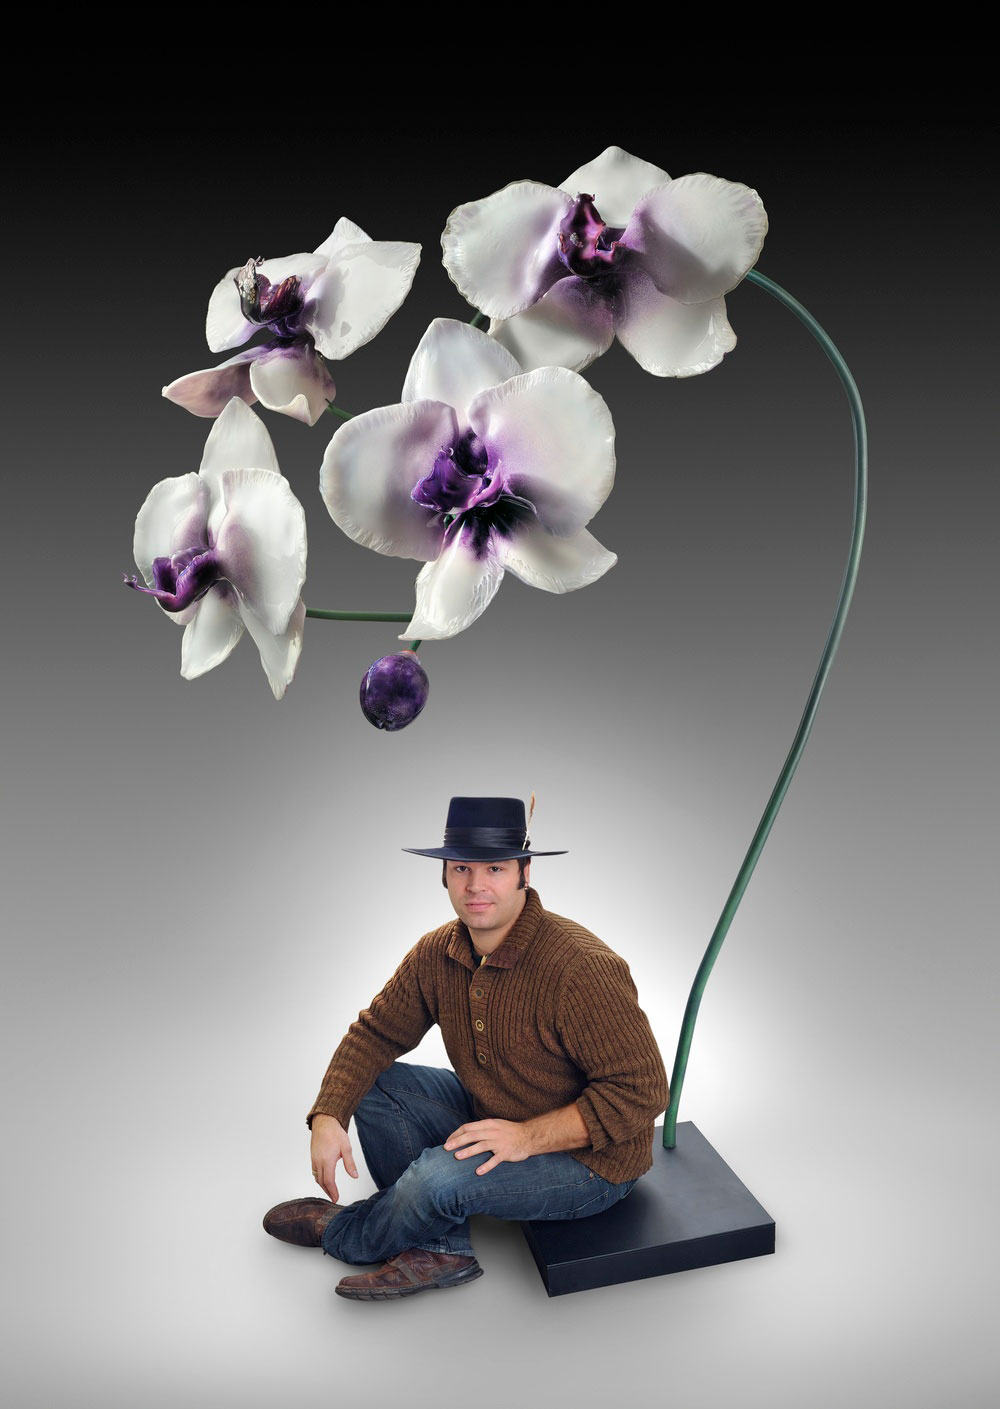 Gigantic And Realistic Flower Sculptures Made From Glass -17